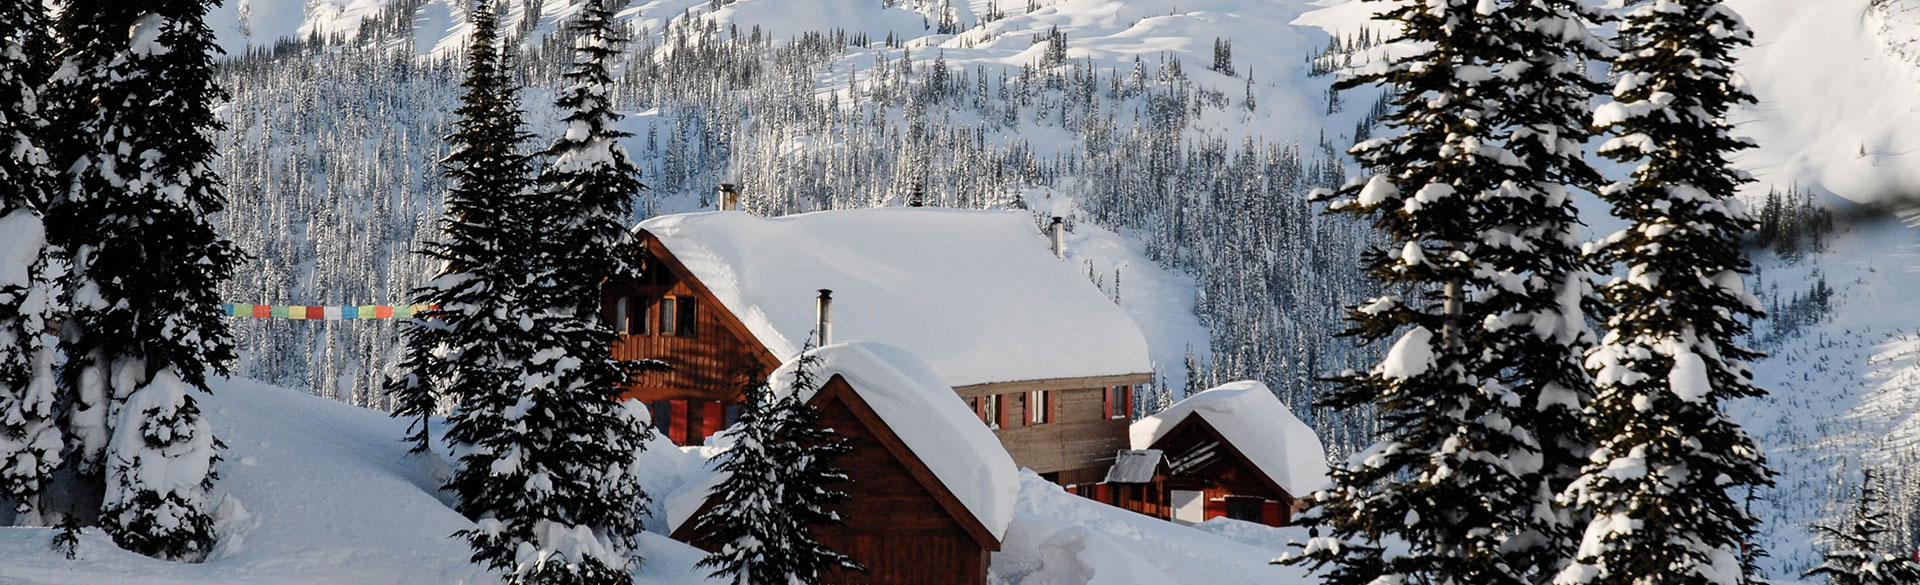 The Durrand Glacier Chalets